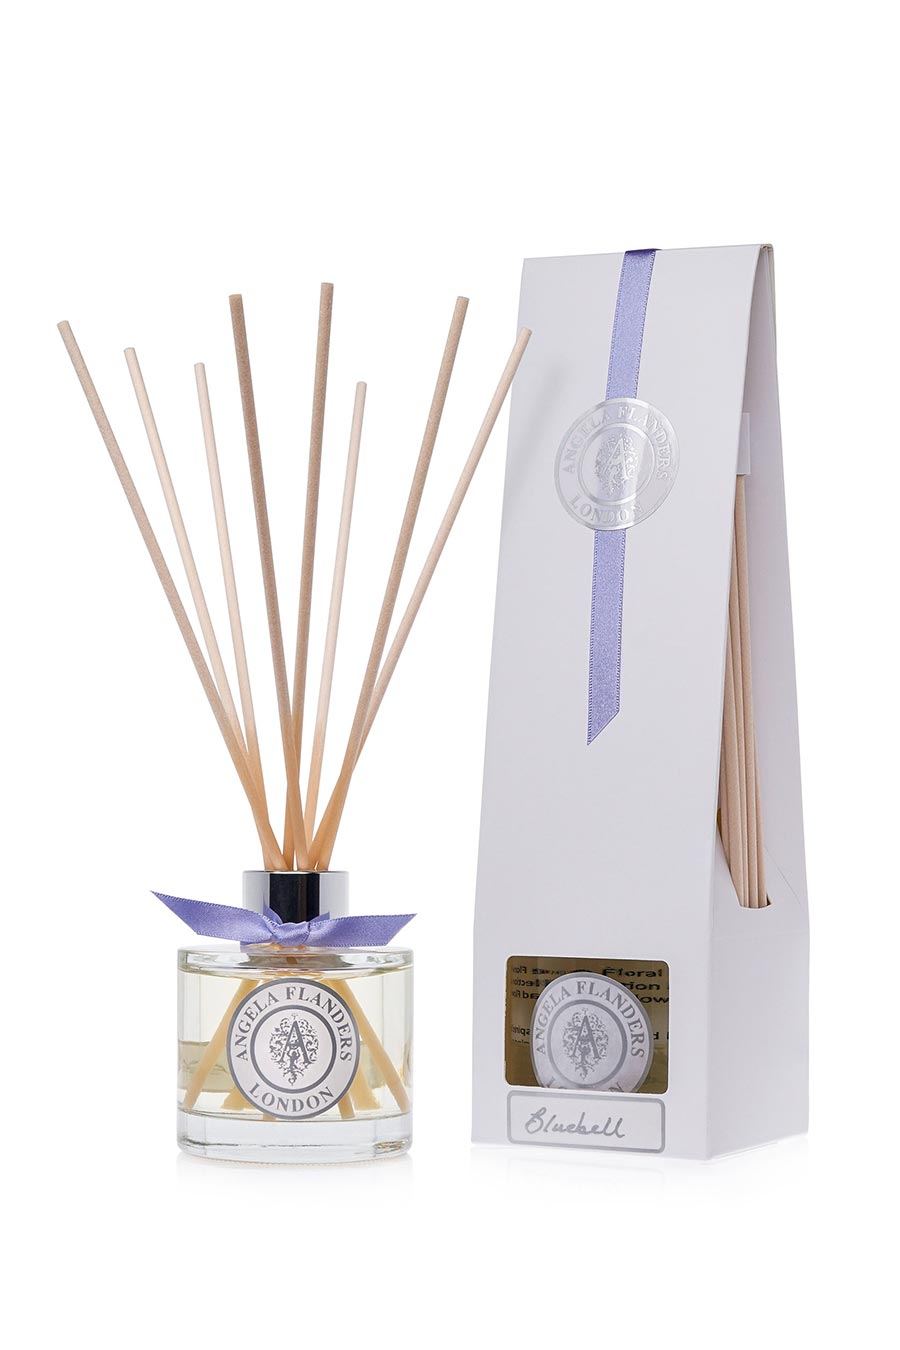 Angela Flanders Bluebell Reed Diffuser